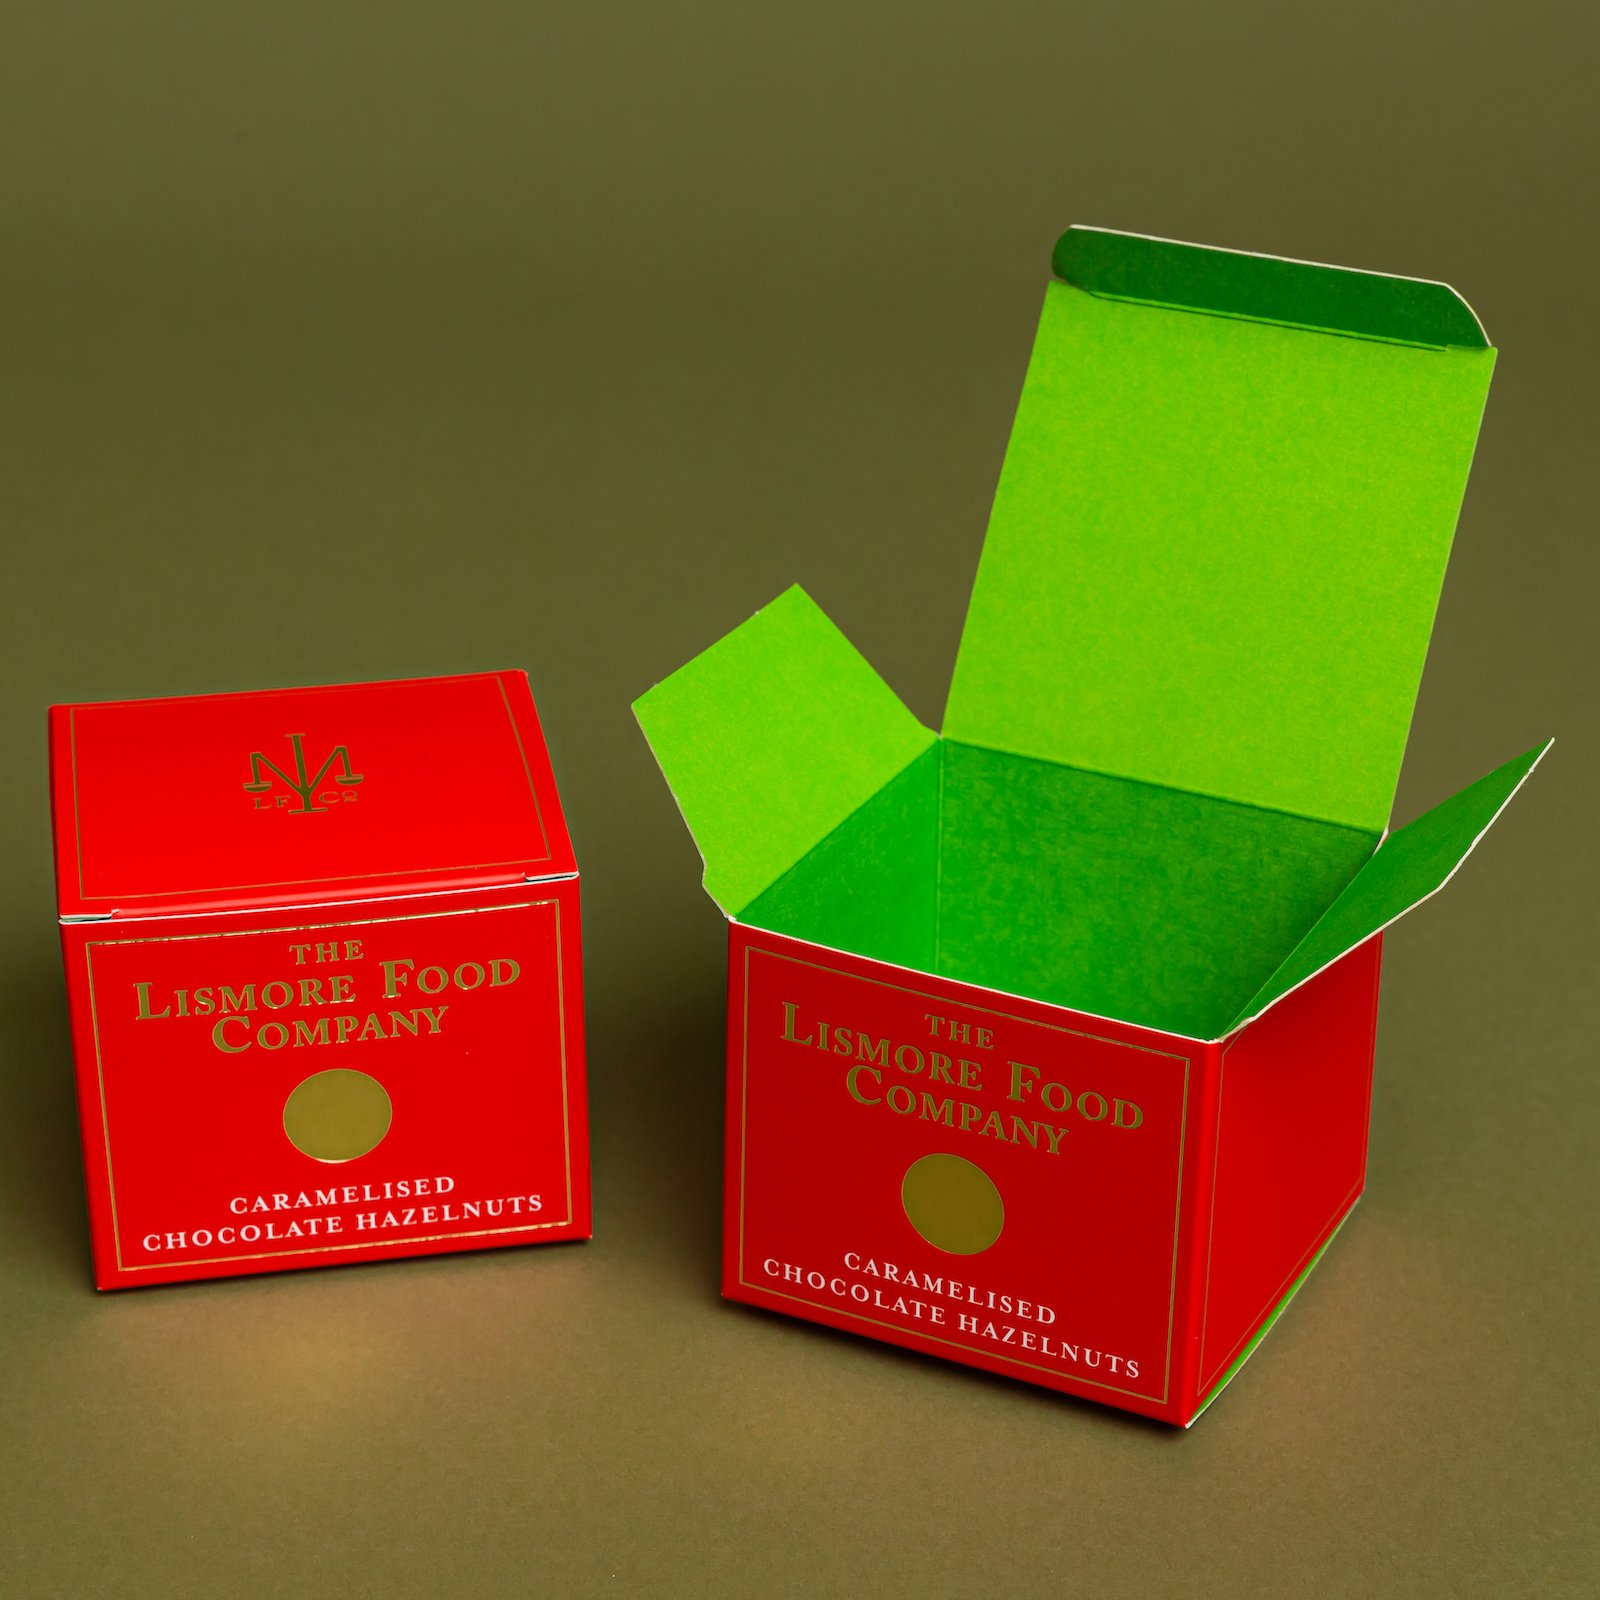 Printed Product Boxes